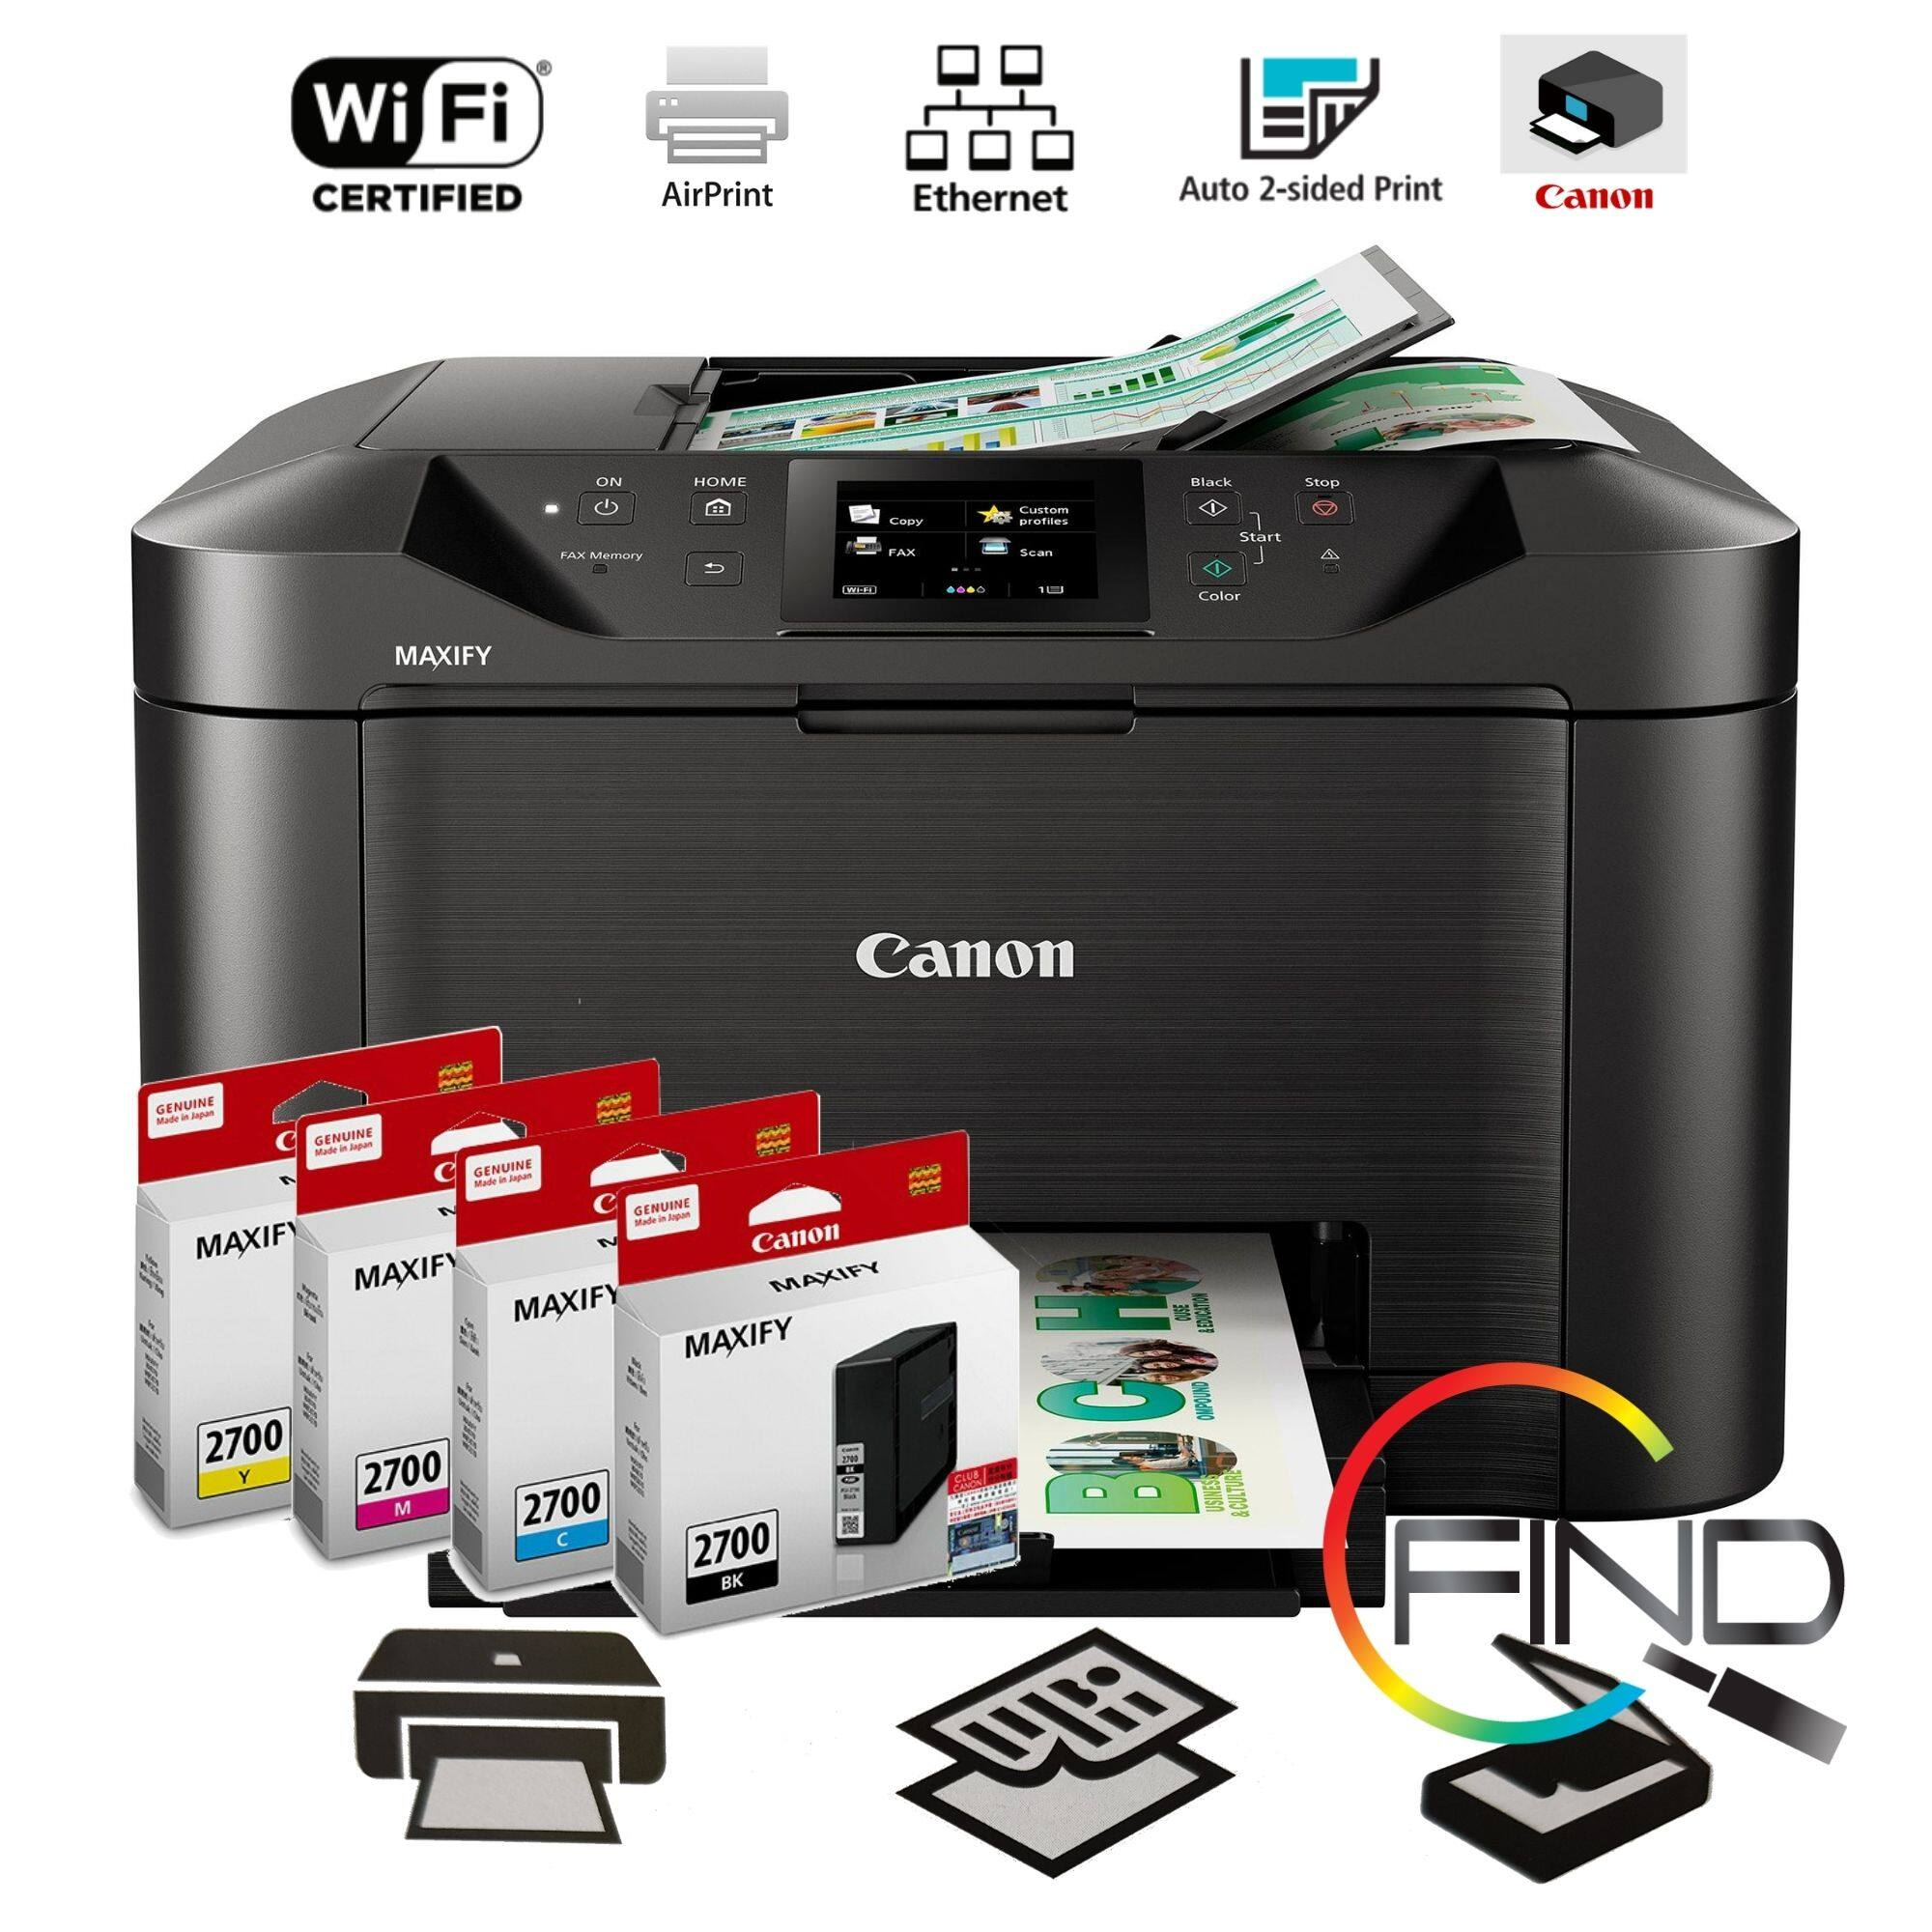 CANON MAXIFY MB5170 ALL-IN-ONE BUSINESS INKJET PRINTER (PRINT/SCAN/COPY/FAX) with Auto- Duplex Print for Highlighter and Water Resistant Documents (FINDC)